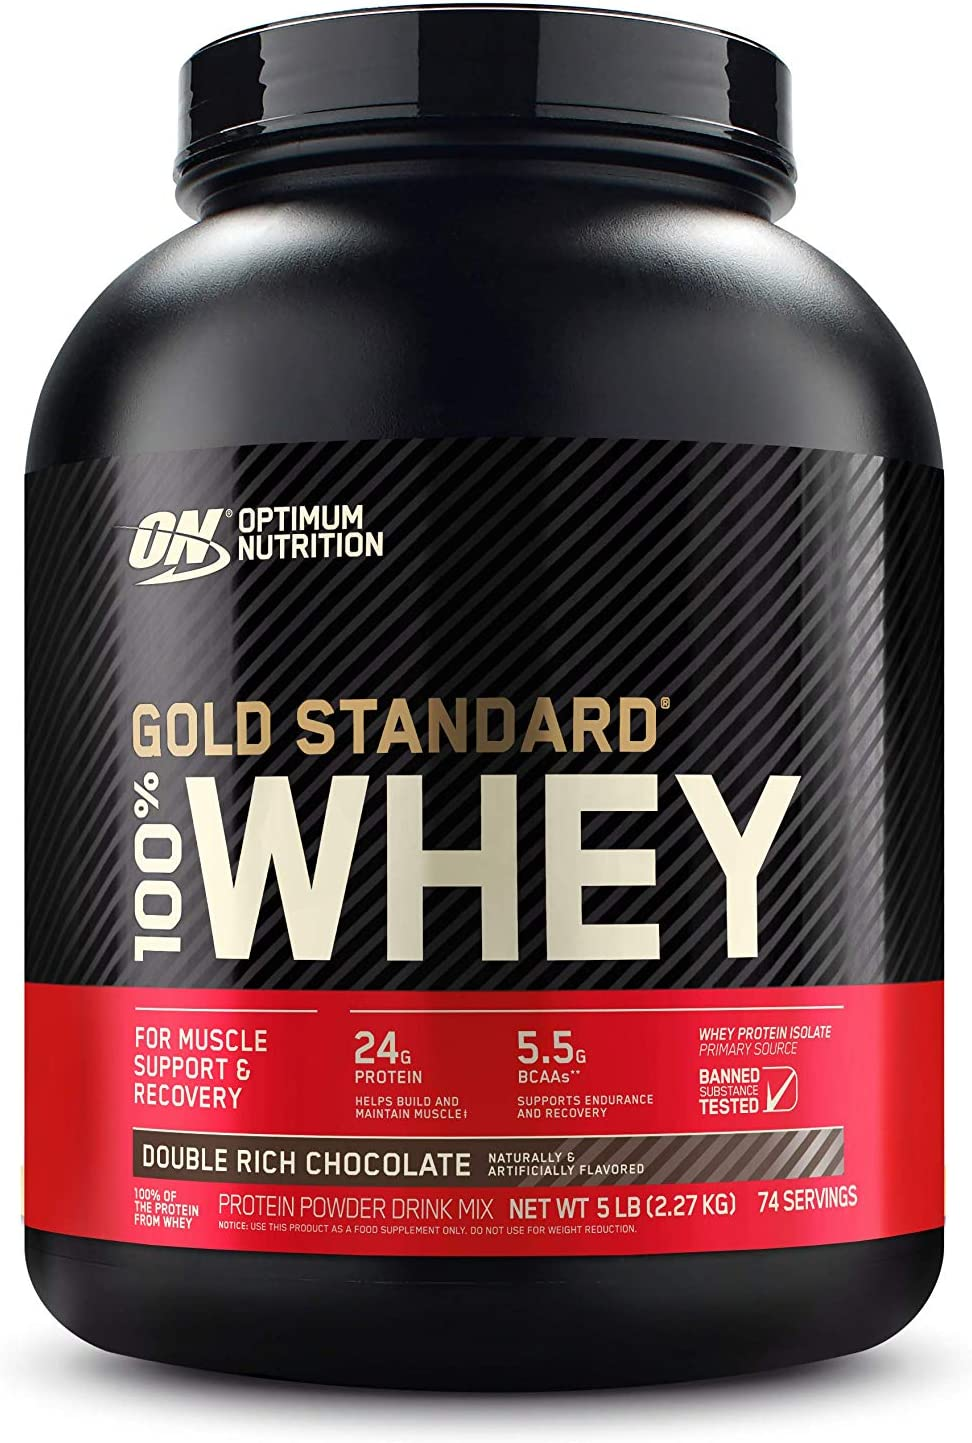 OPTIMUM NUTRITION GOLD STANDARD 100% Whey Protein Powder, Double Rich Chocolate 5 Pound